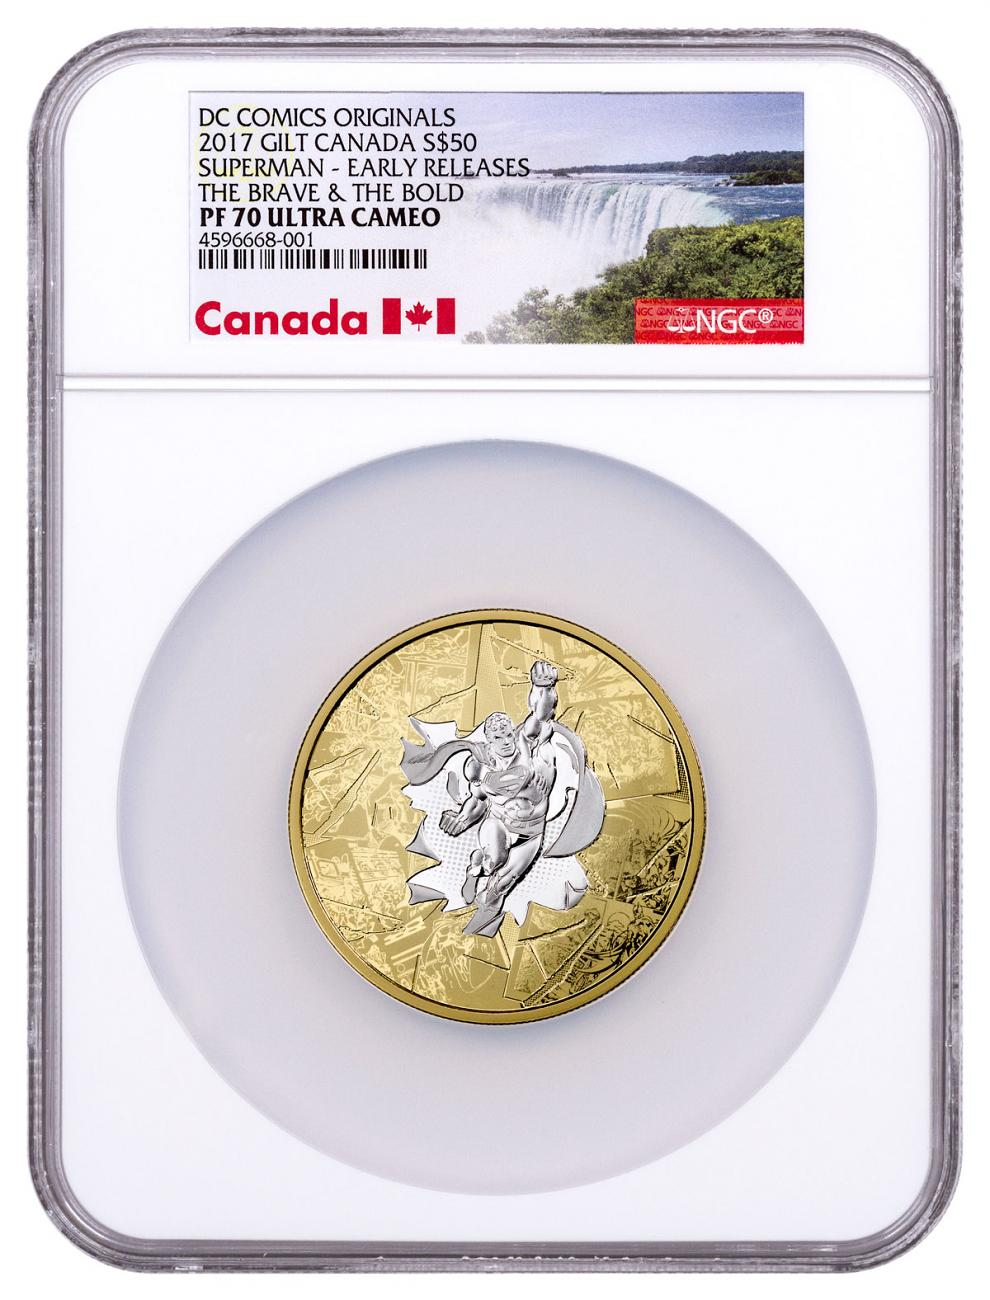 2017 Canada DC Comics Originals - Superman The Brave and The Bold 3 oz Silver Gilt Proof $50 Coin NGC PF70 UC ER Exclusive Canada Label